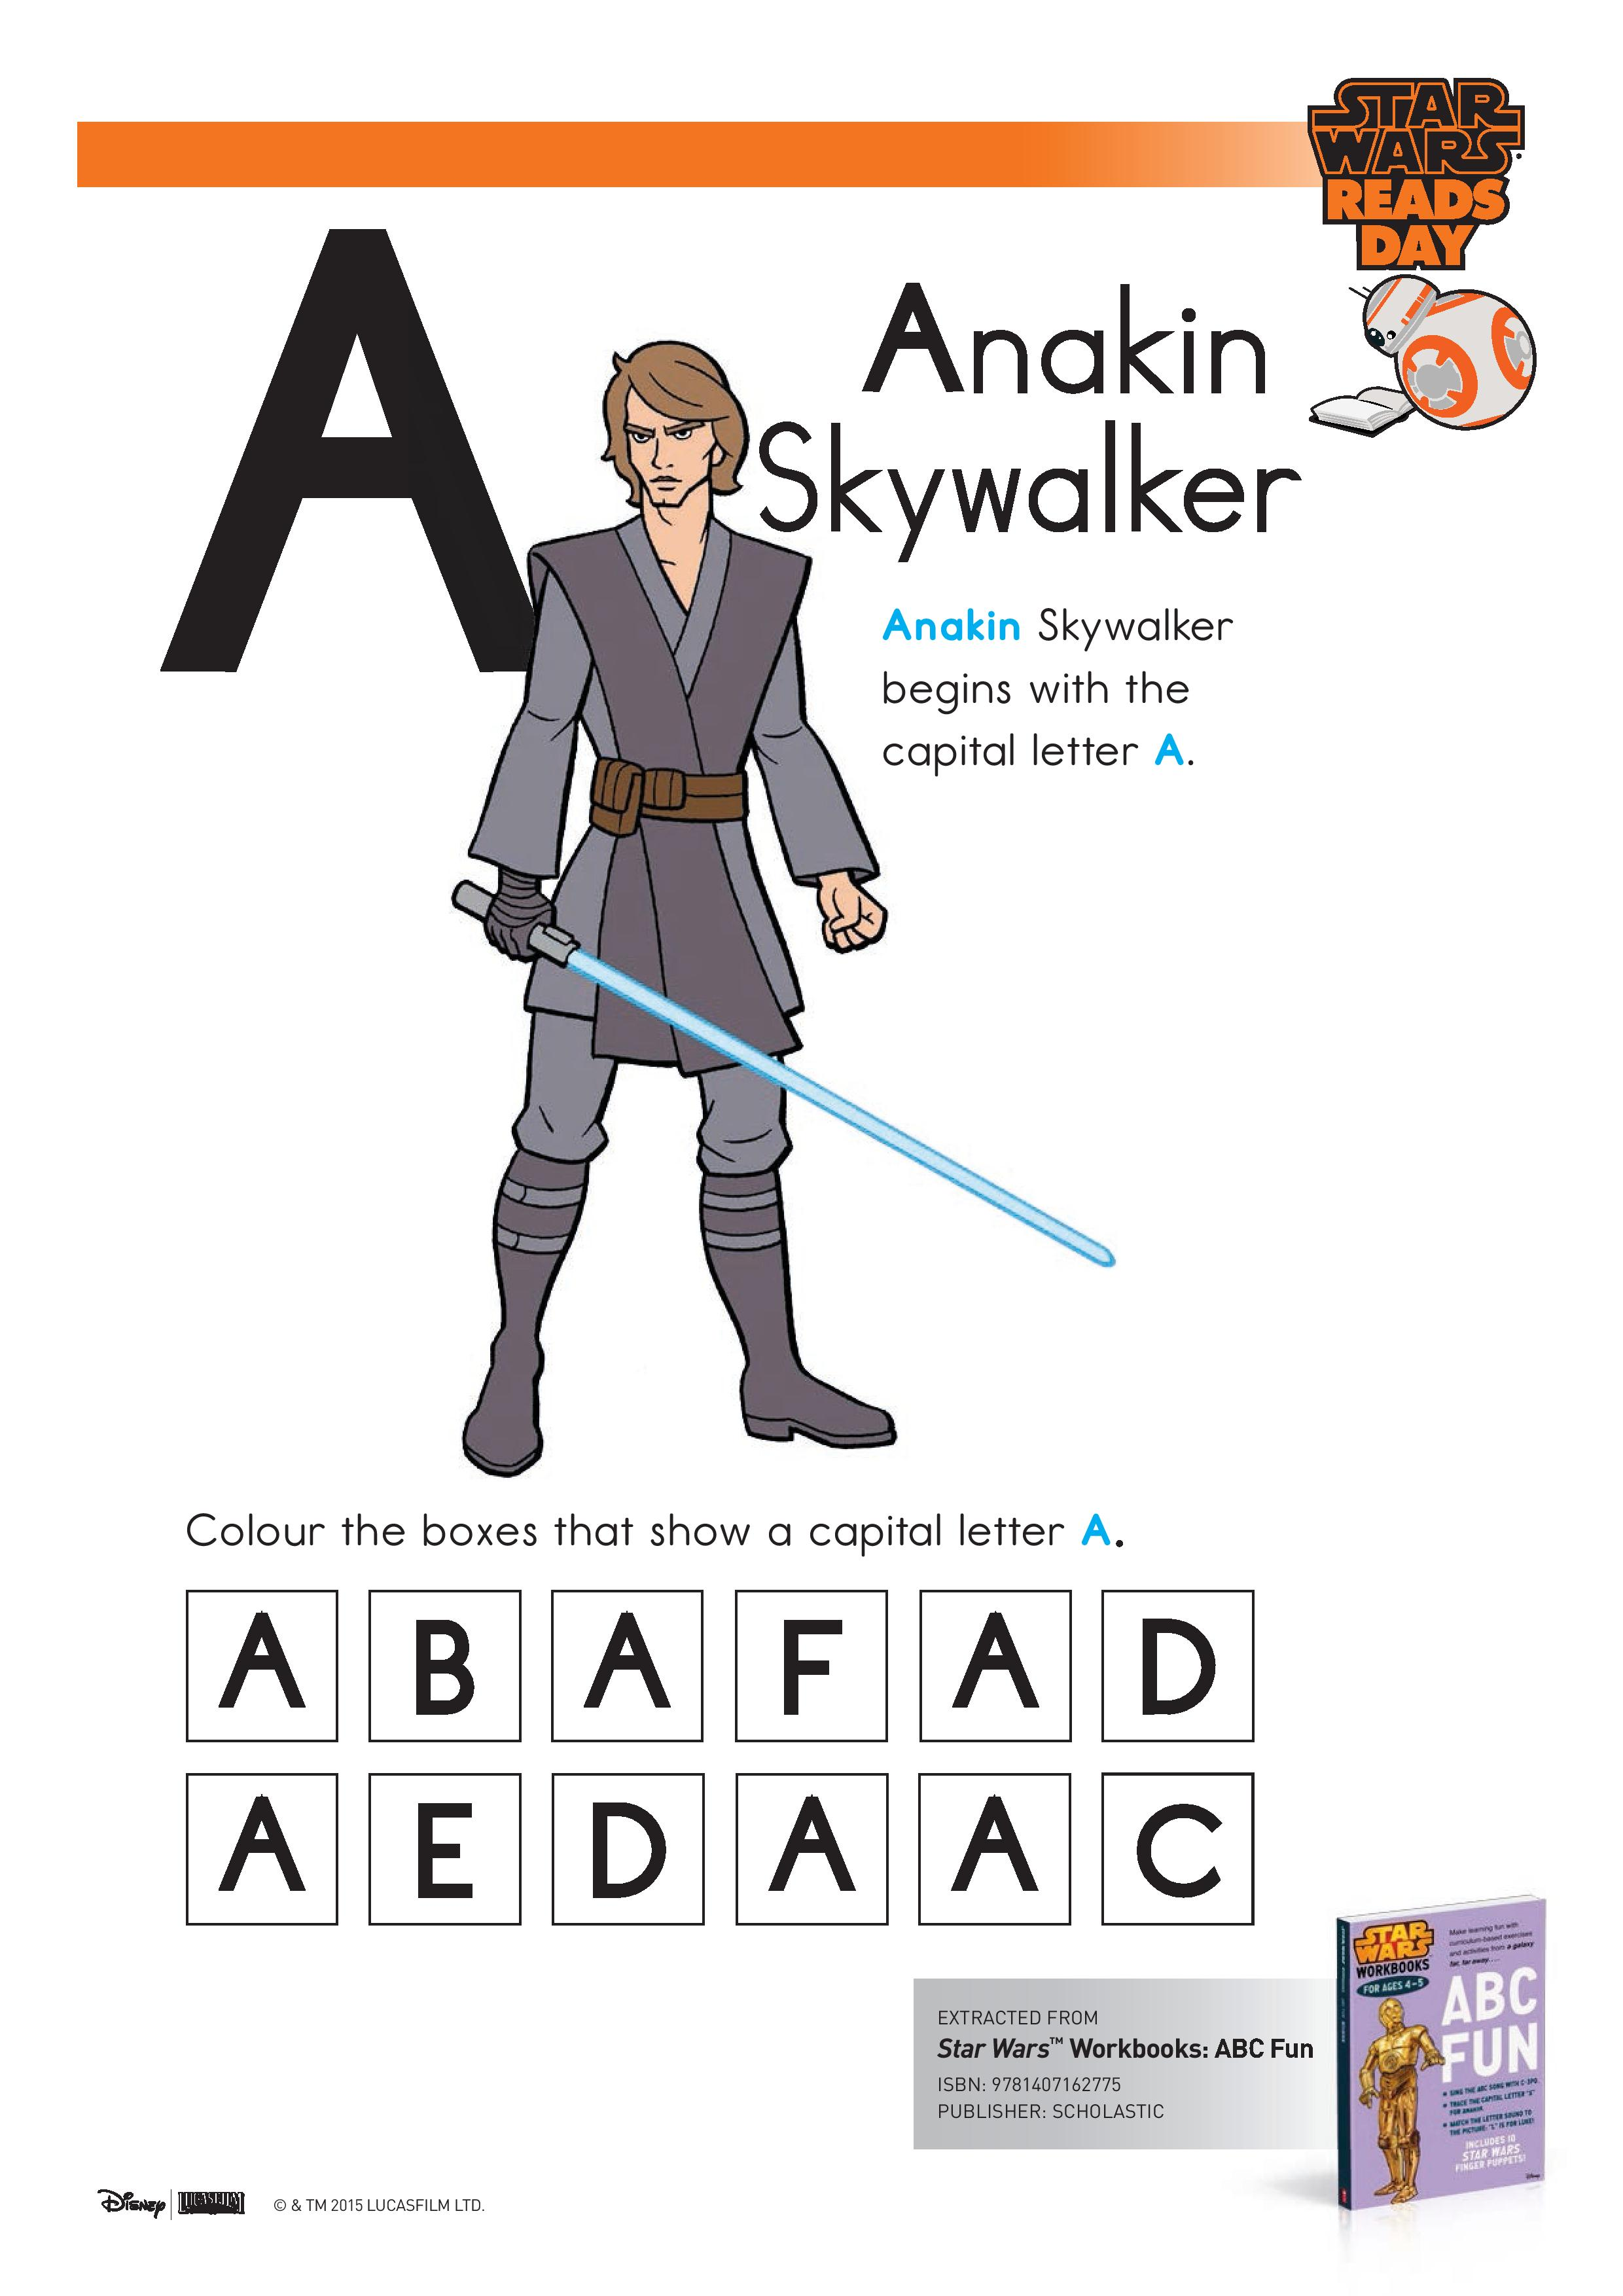 star-wars-reads-day-2015-activity-sheets-page-011